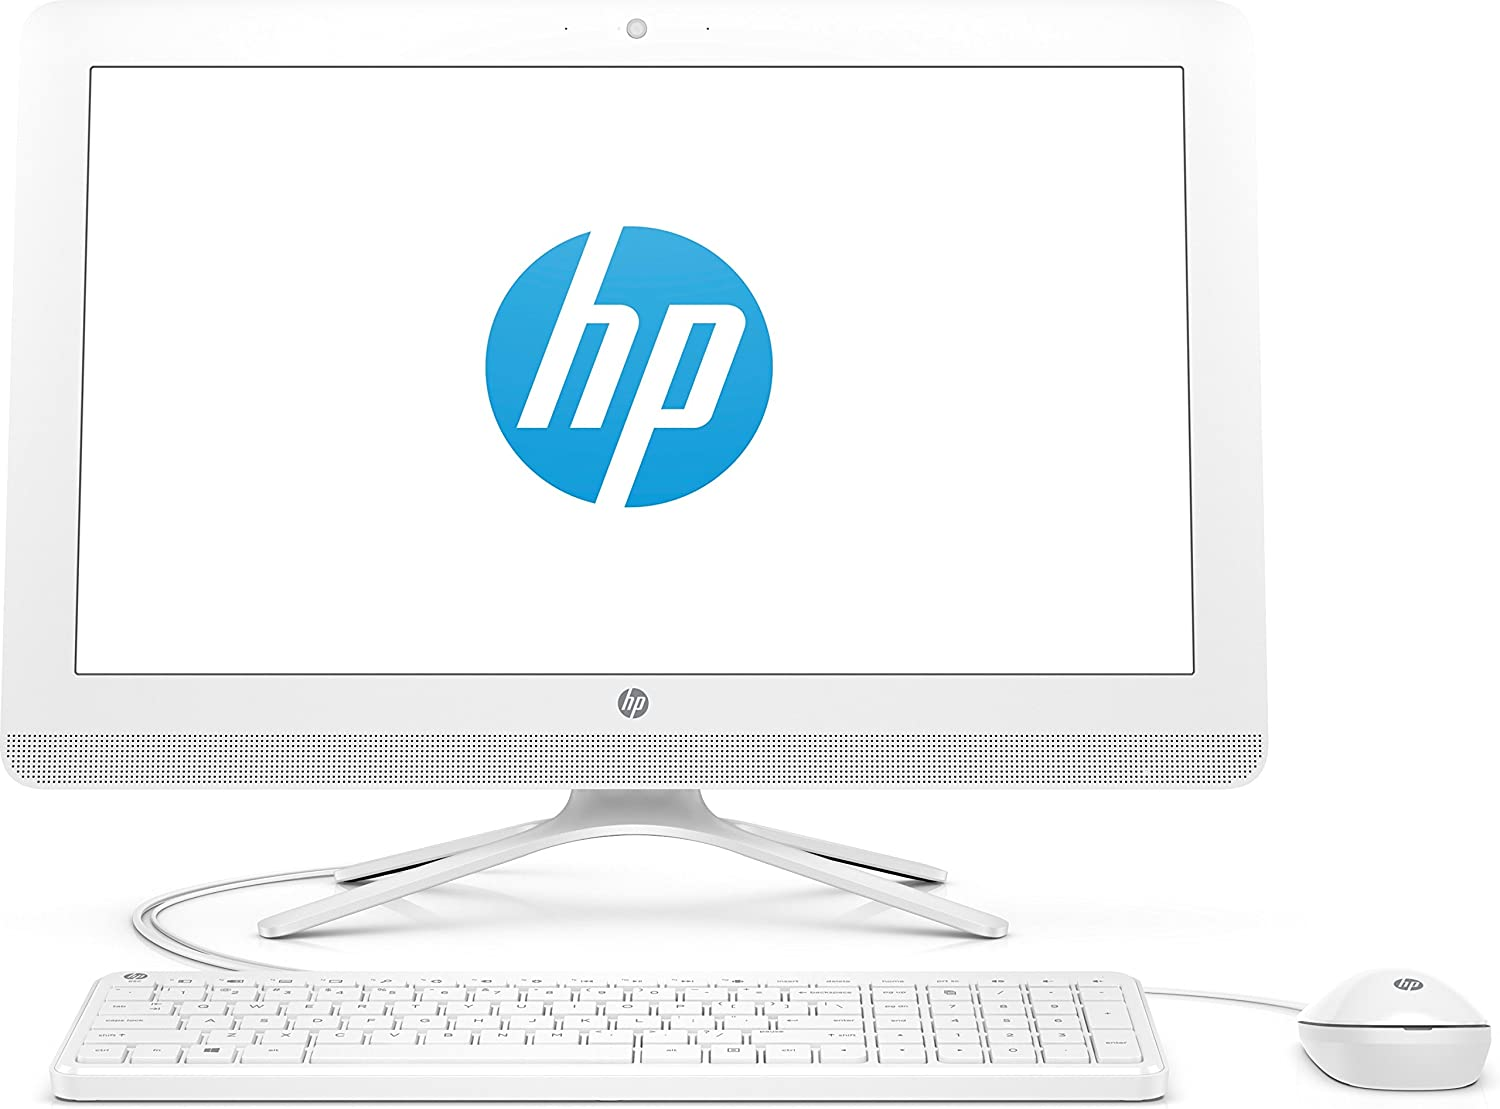 """2019 New HP 22 All-in-One PC Full HD 21.5"""" Intel Celerion G4900T Intel UHD Graphics 610 1TB HDD 4GB SDRAM DVD Privacy Webcam Serenity Mint"""